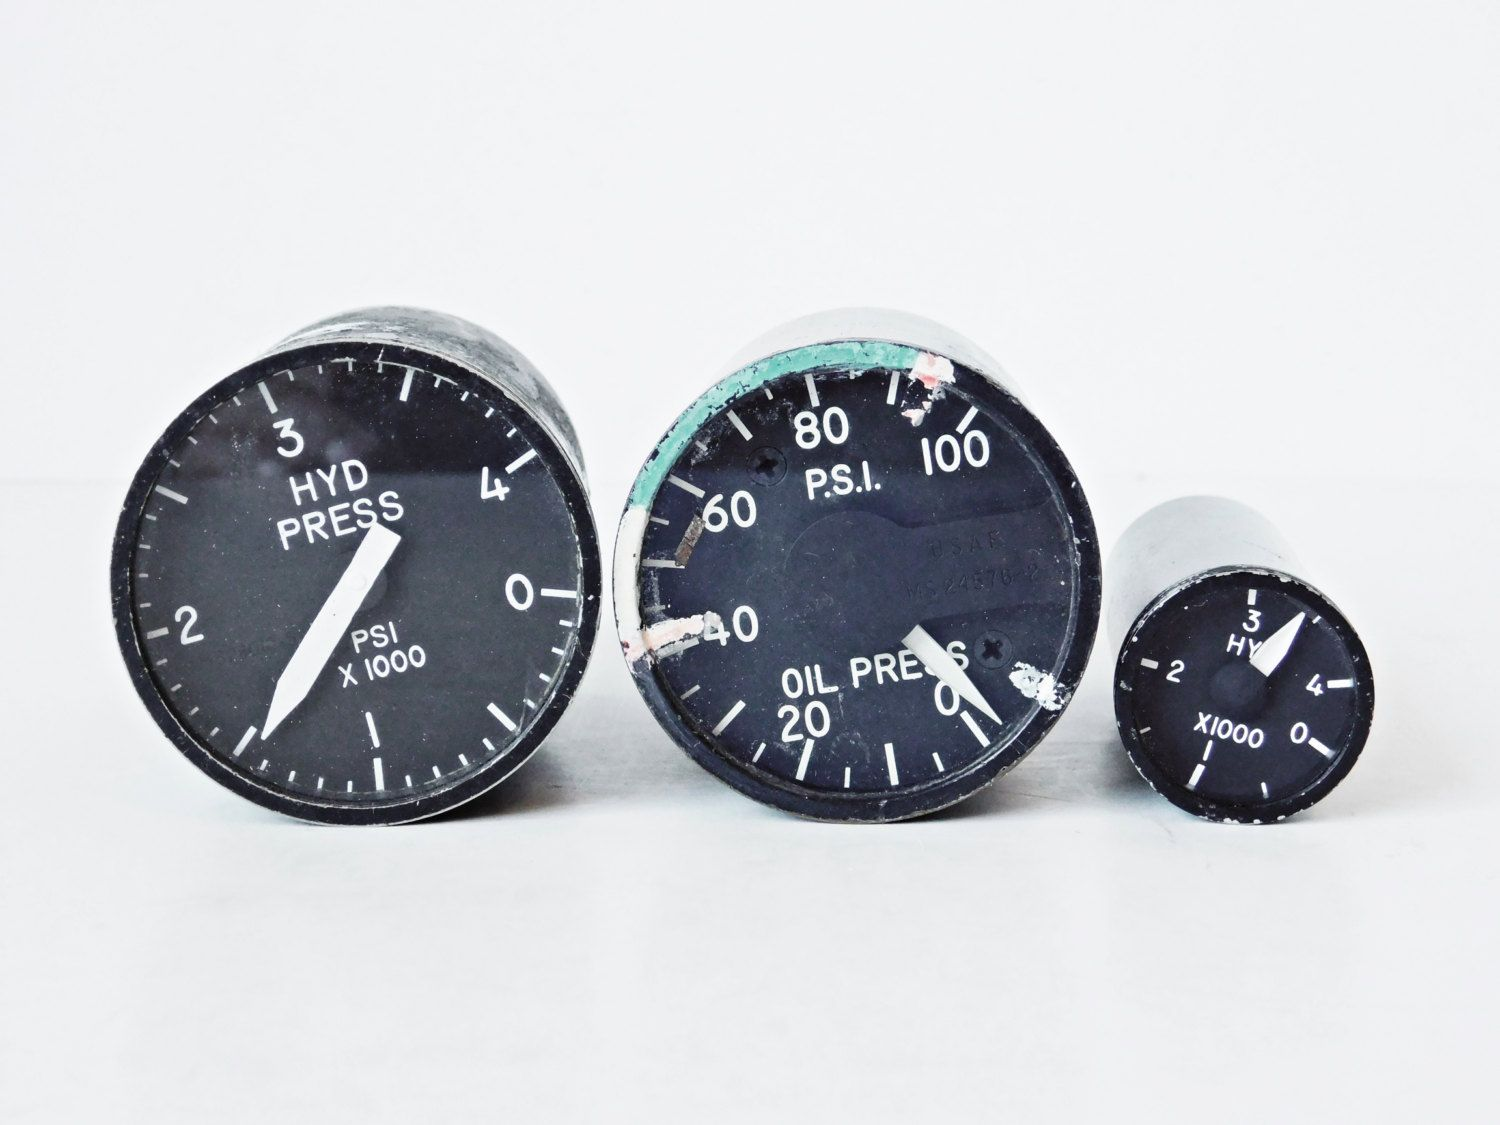 Us jet aircraft indicator gauges hydraulic pressure oil pressure us jet aircraft indicator gauges hydraulic pressure oil pressure gauges military aircraft fighter jet salvage industrial decor thecheapjerseys Gallery